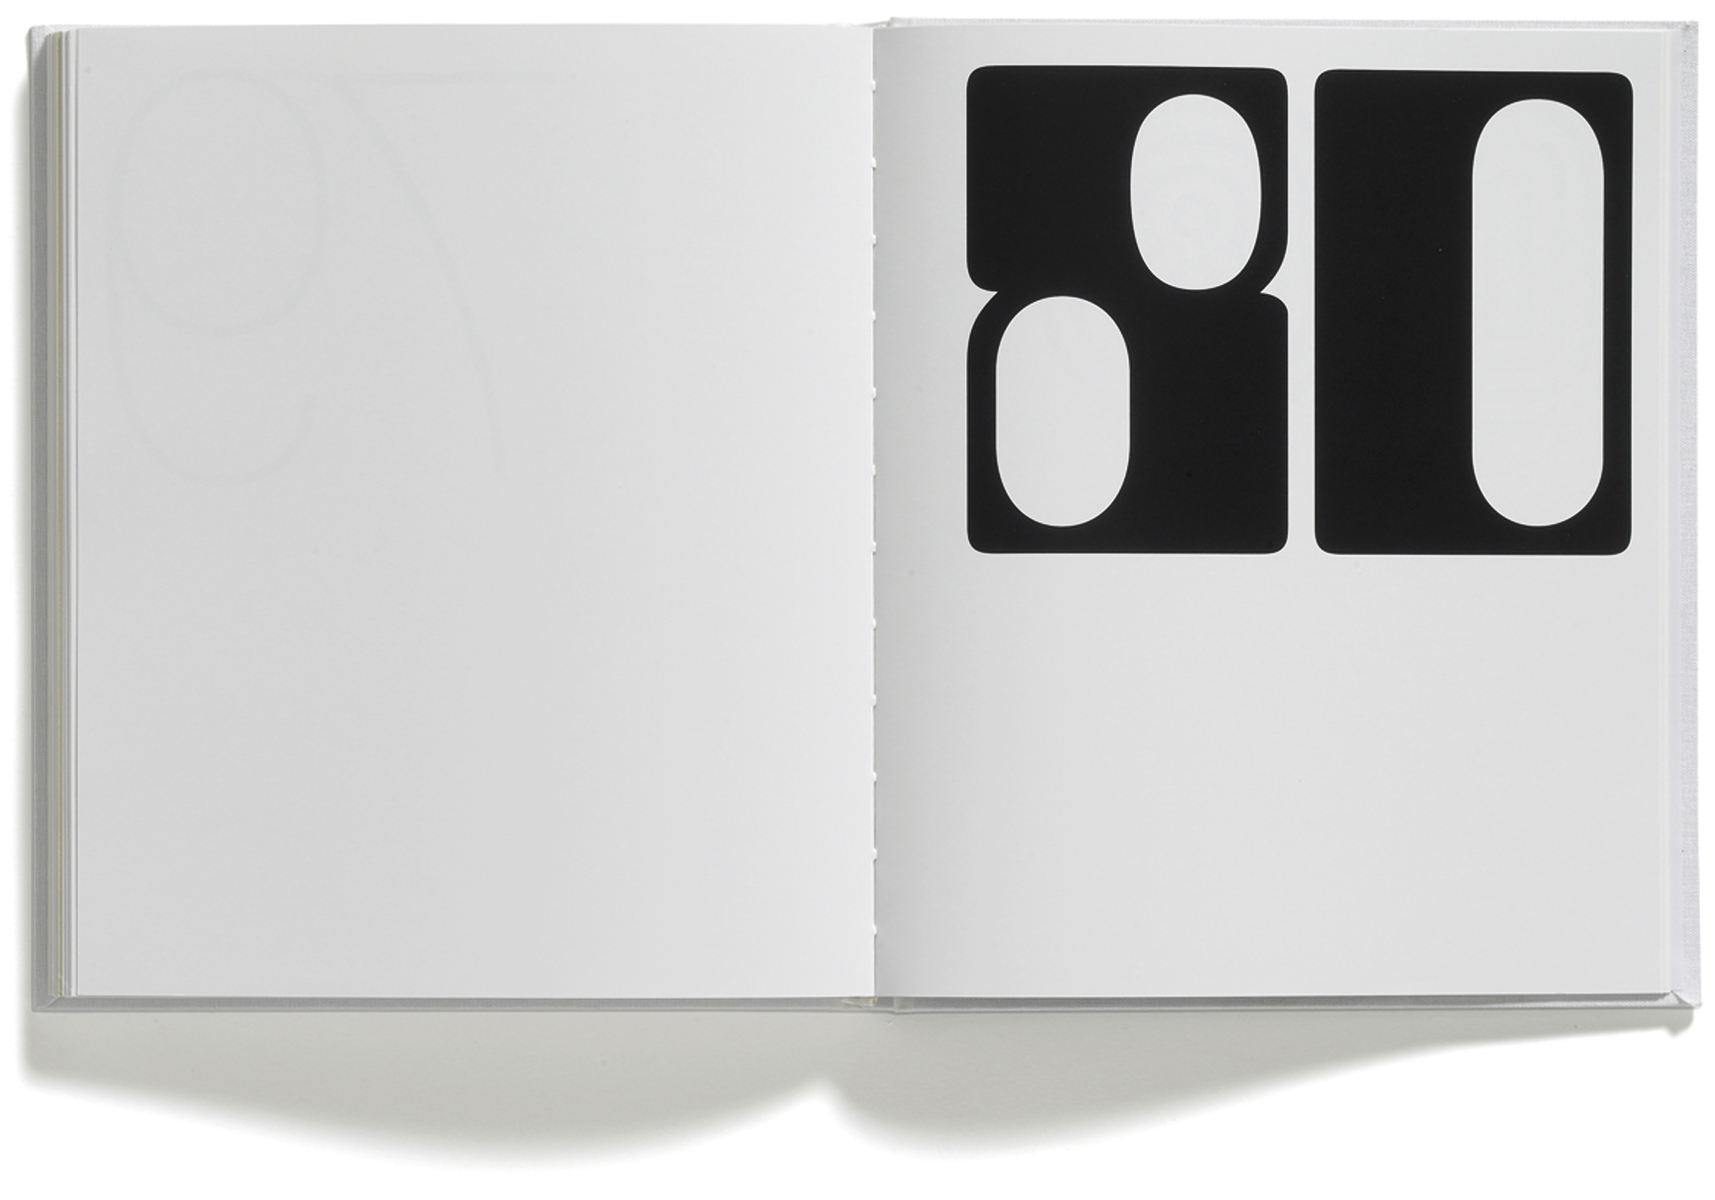 87 Ellery, Jonathan Ellery, Published by Browns Editions, Design by Browns Design